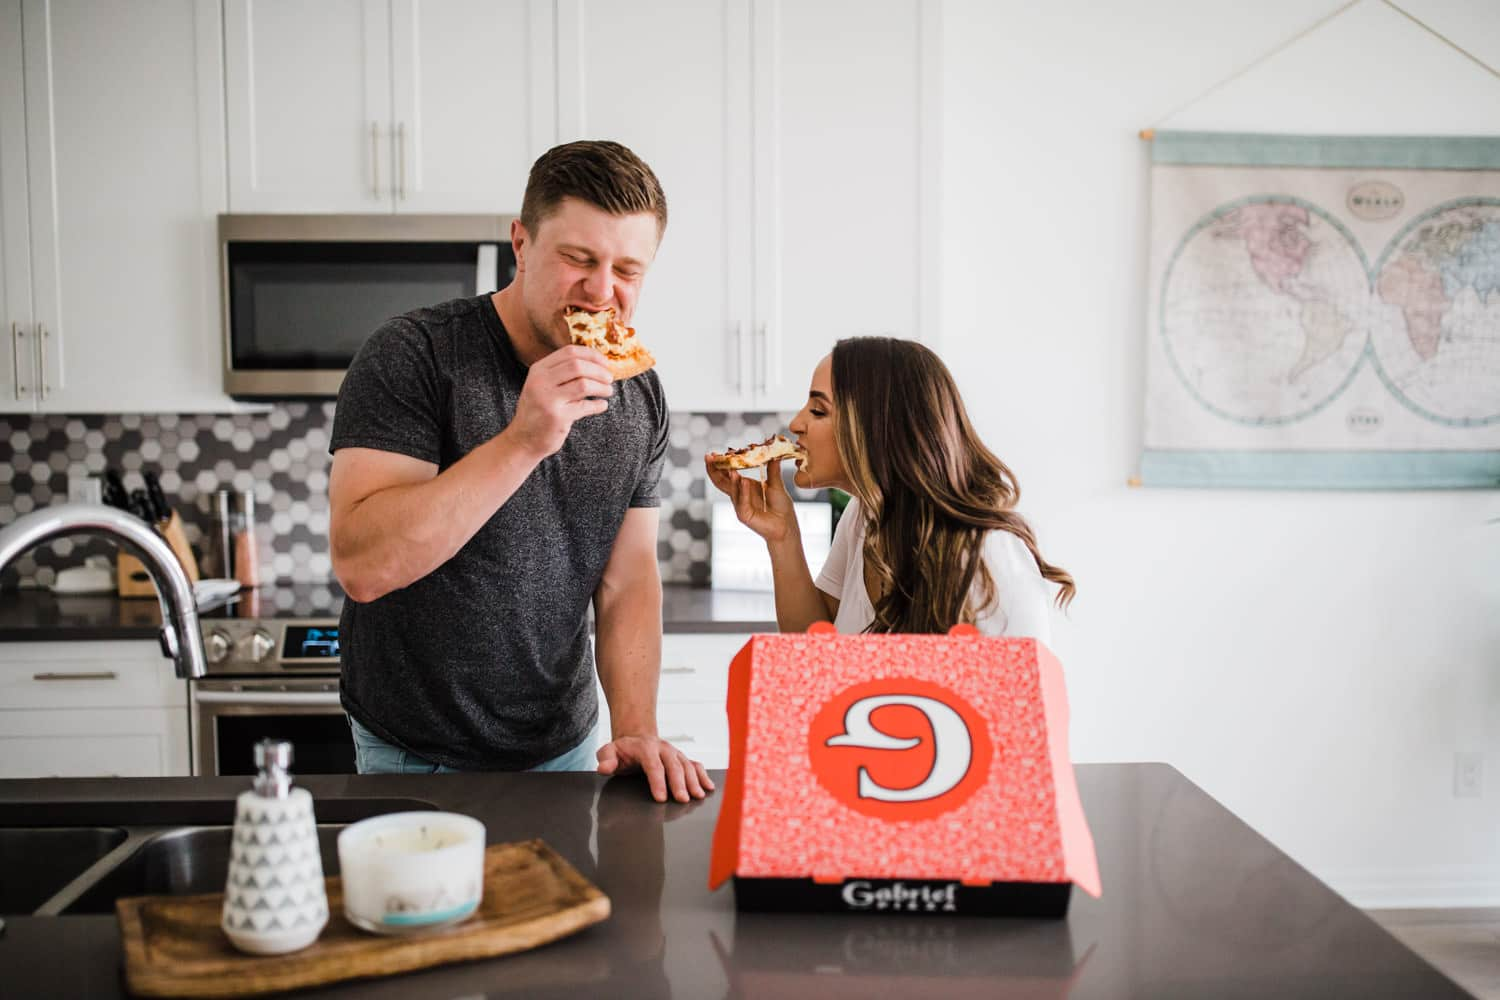 couple eat pizza together at kitchen island